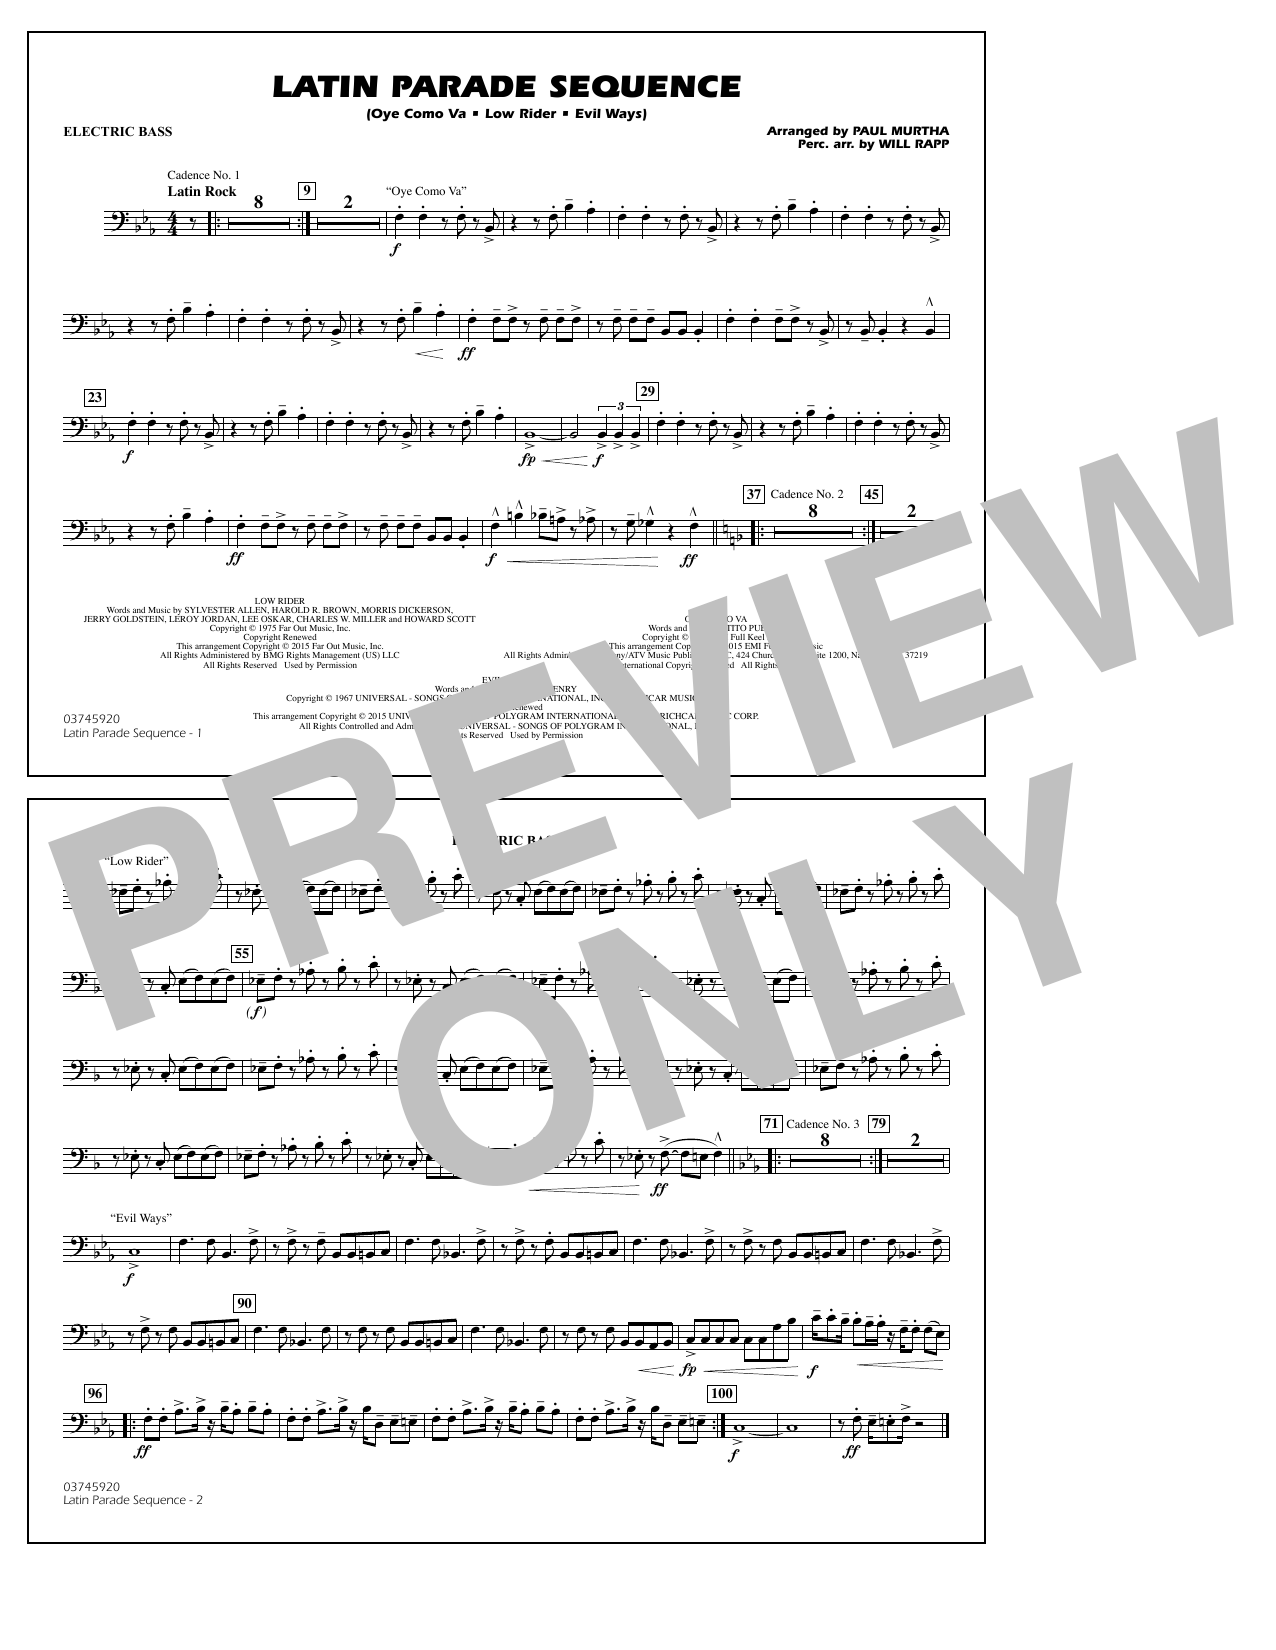 Latin Parade Sequence - Electric Bass (Marching Band)